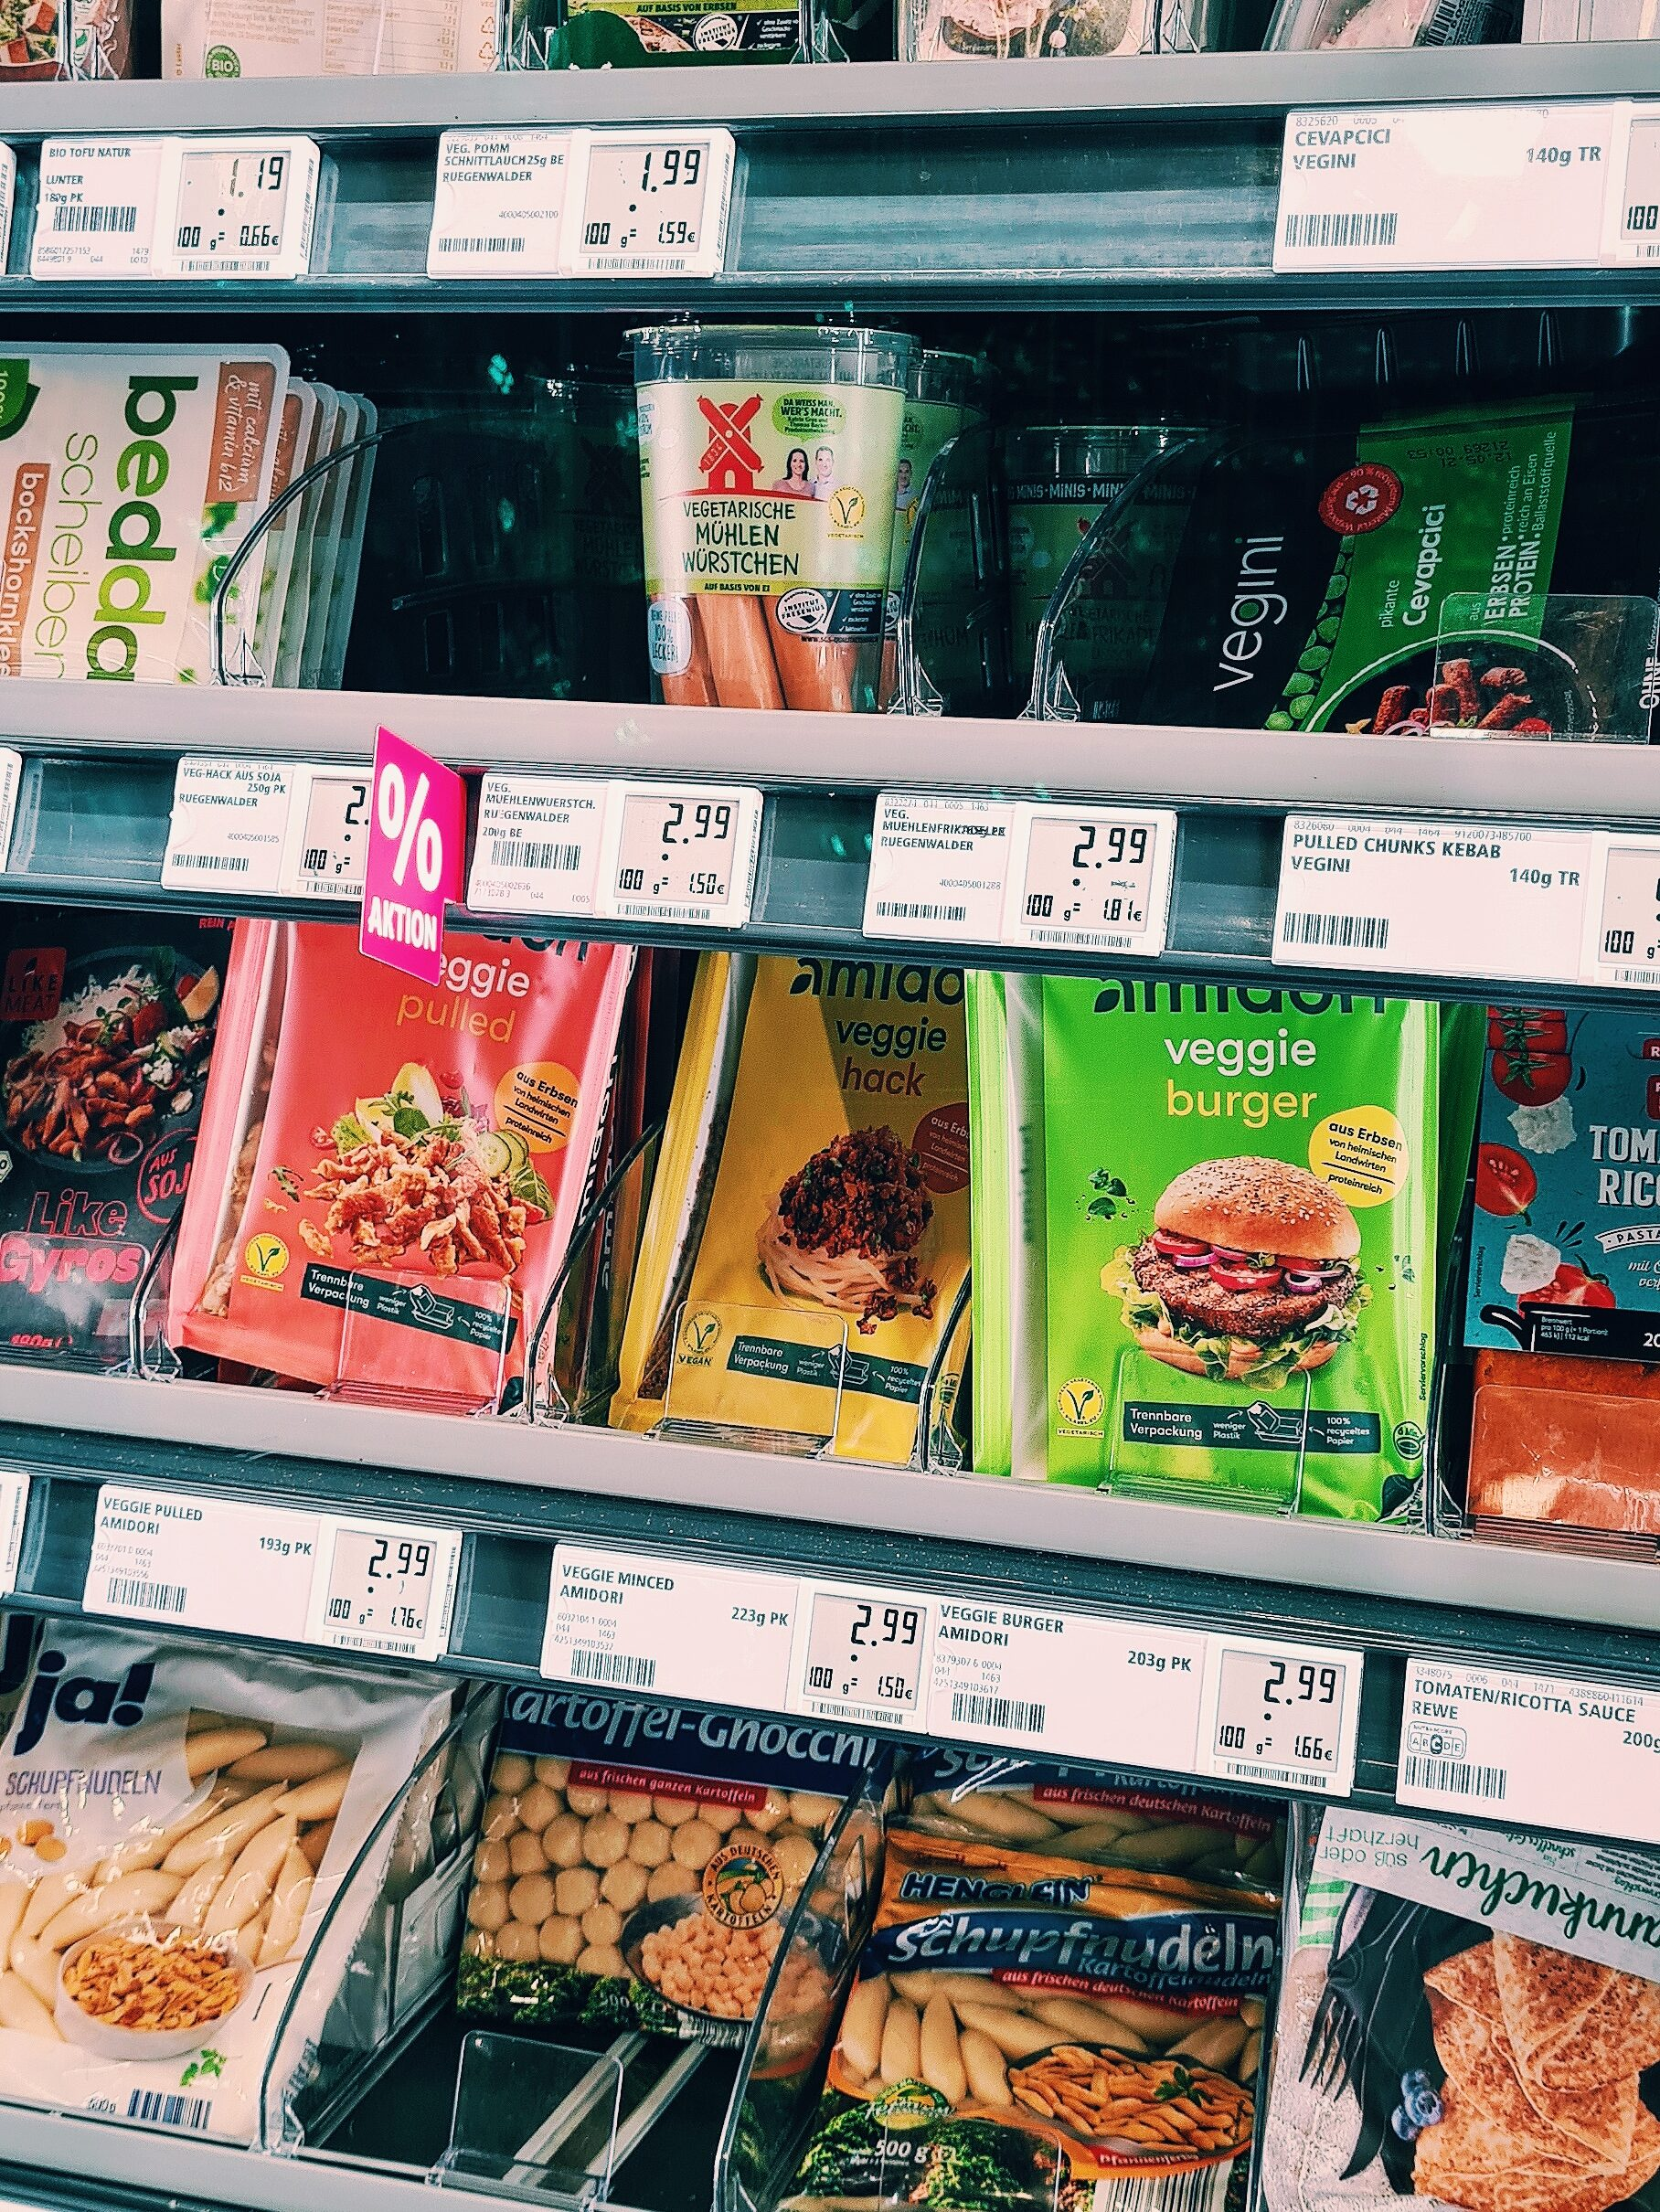 A photo of the refrigeratede vegetarian food section in the local Rewe supermarket.